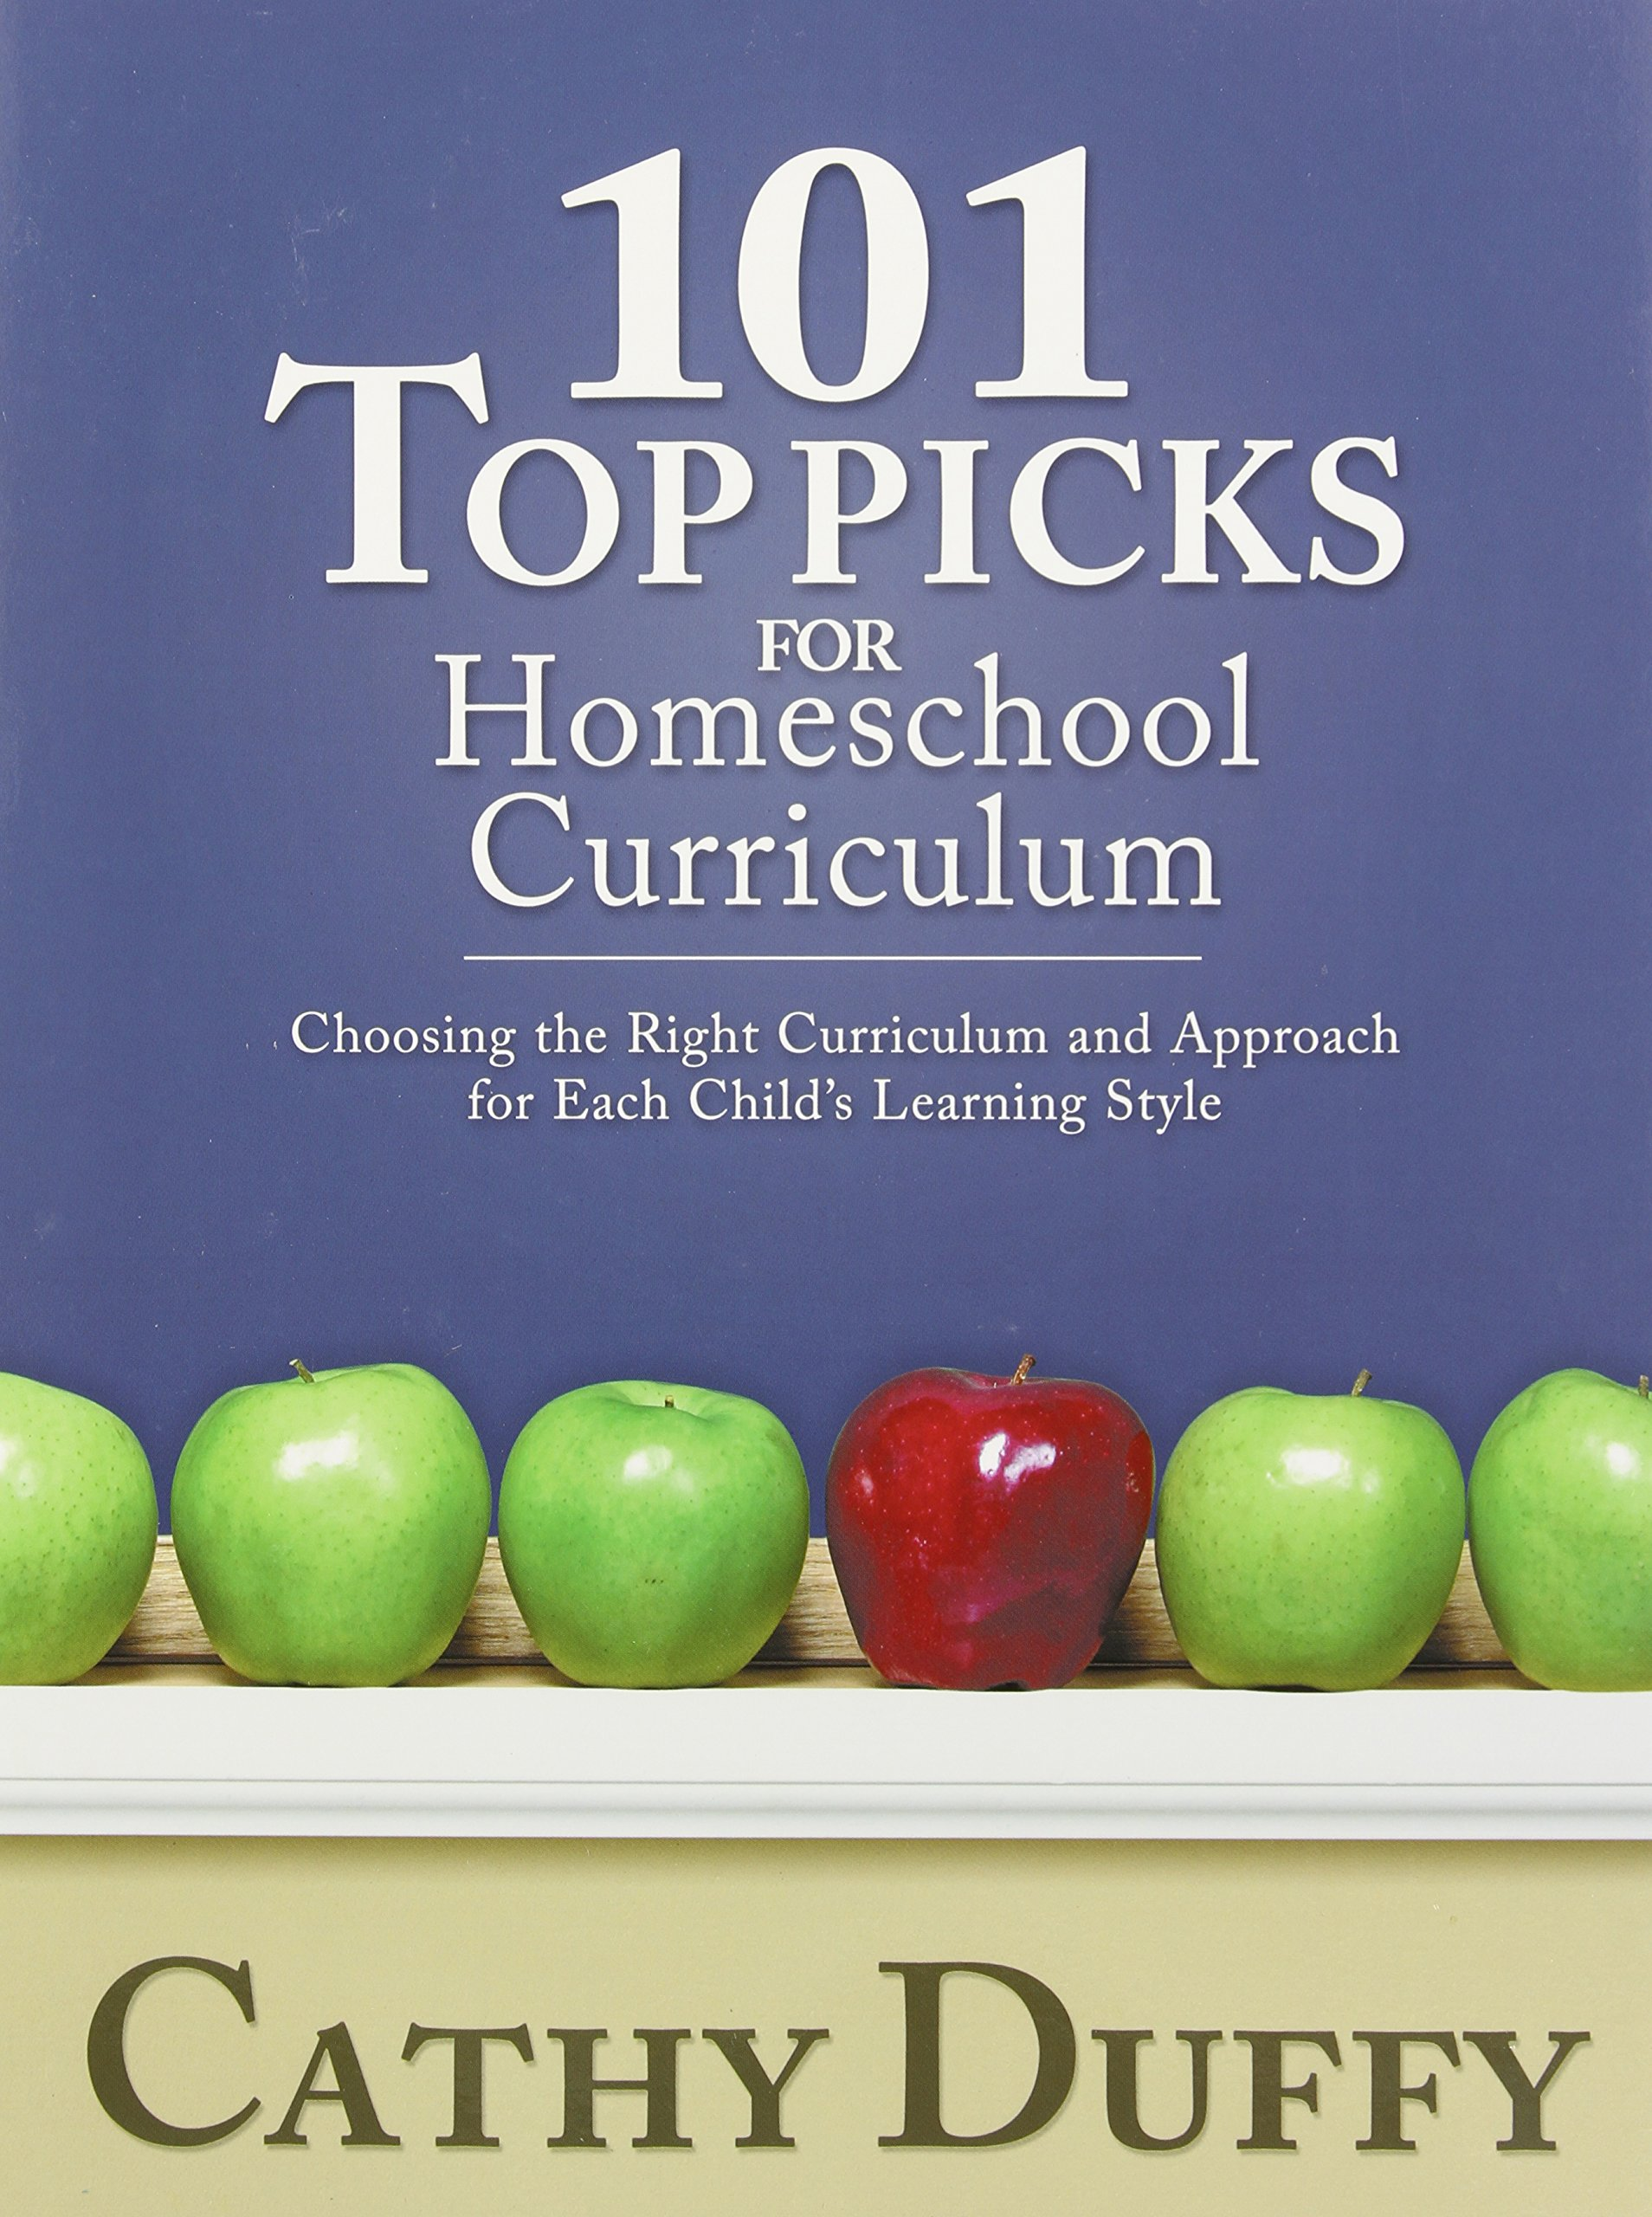 101 Top Picks for Homeschool Curriculum: Cathy Duffy: 9780929320151:  Amazon.com: Books